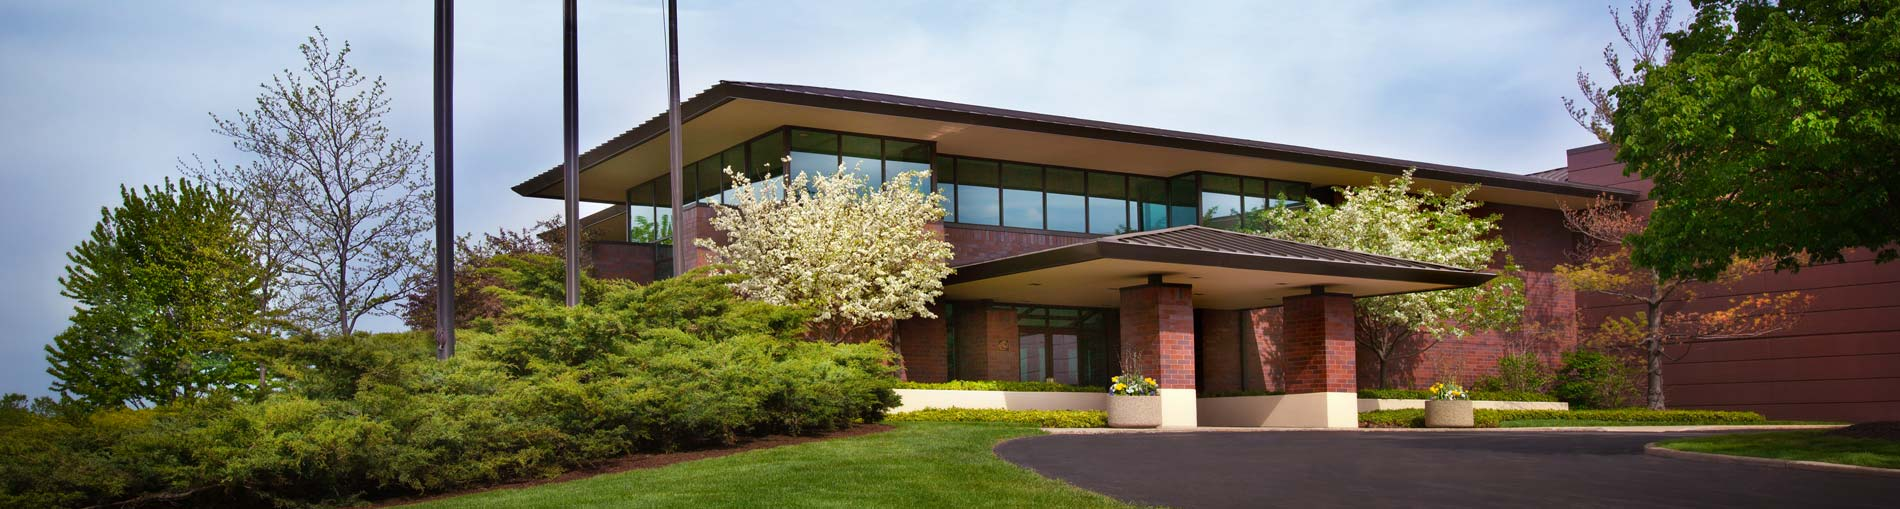 Paper Machinery Corporation's corporate headquarters and manufacturing facility is located in Milwaukee, Wisconsin, USA.